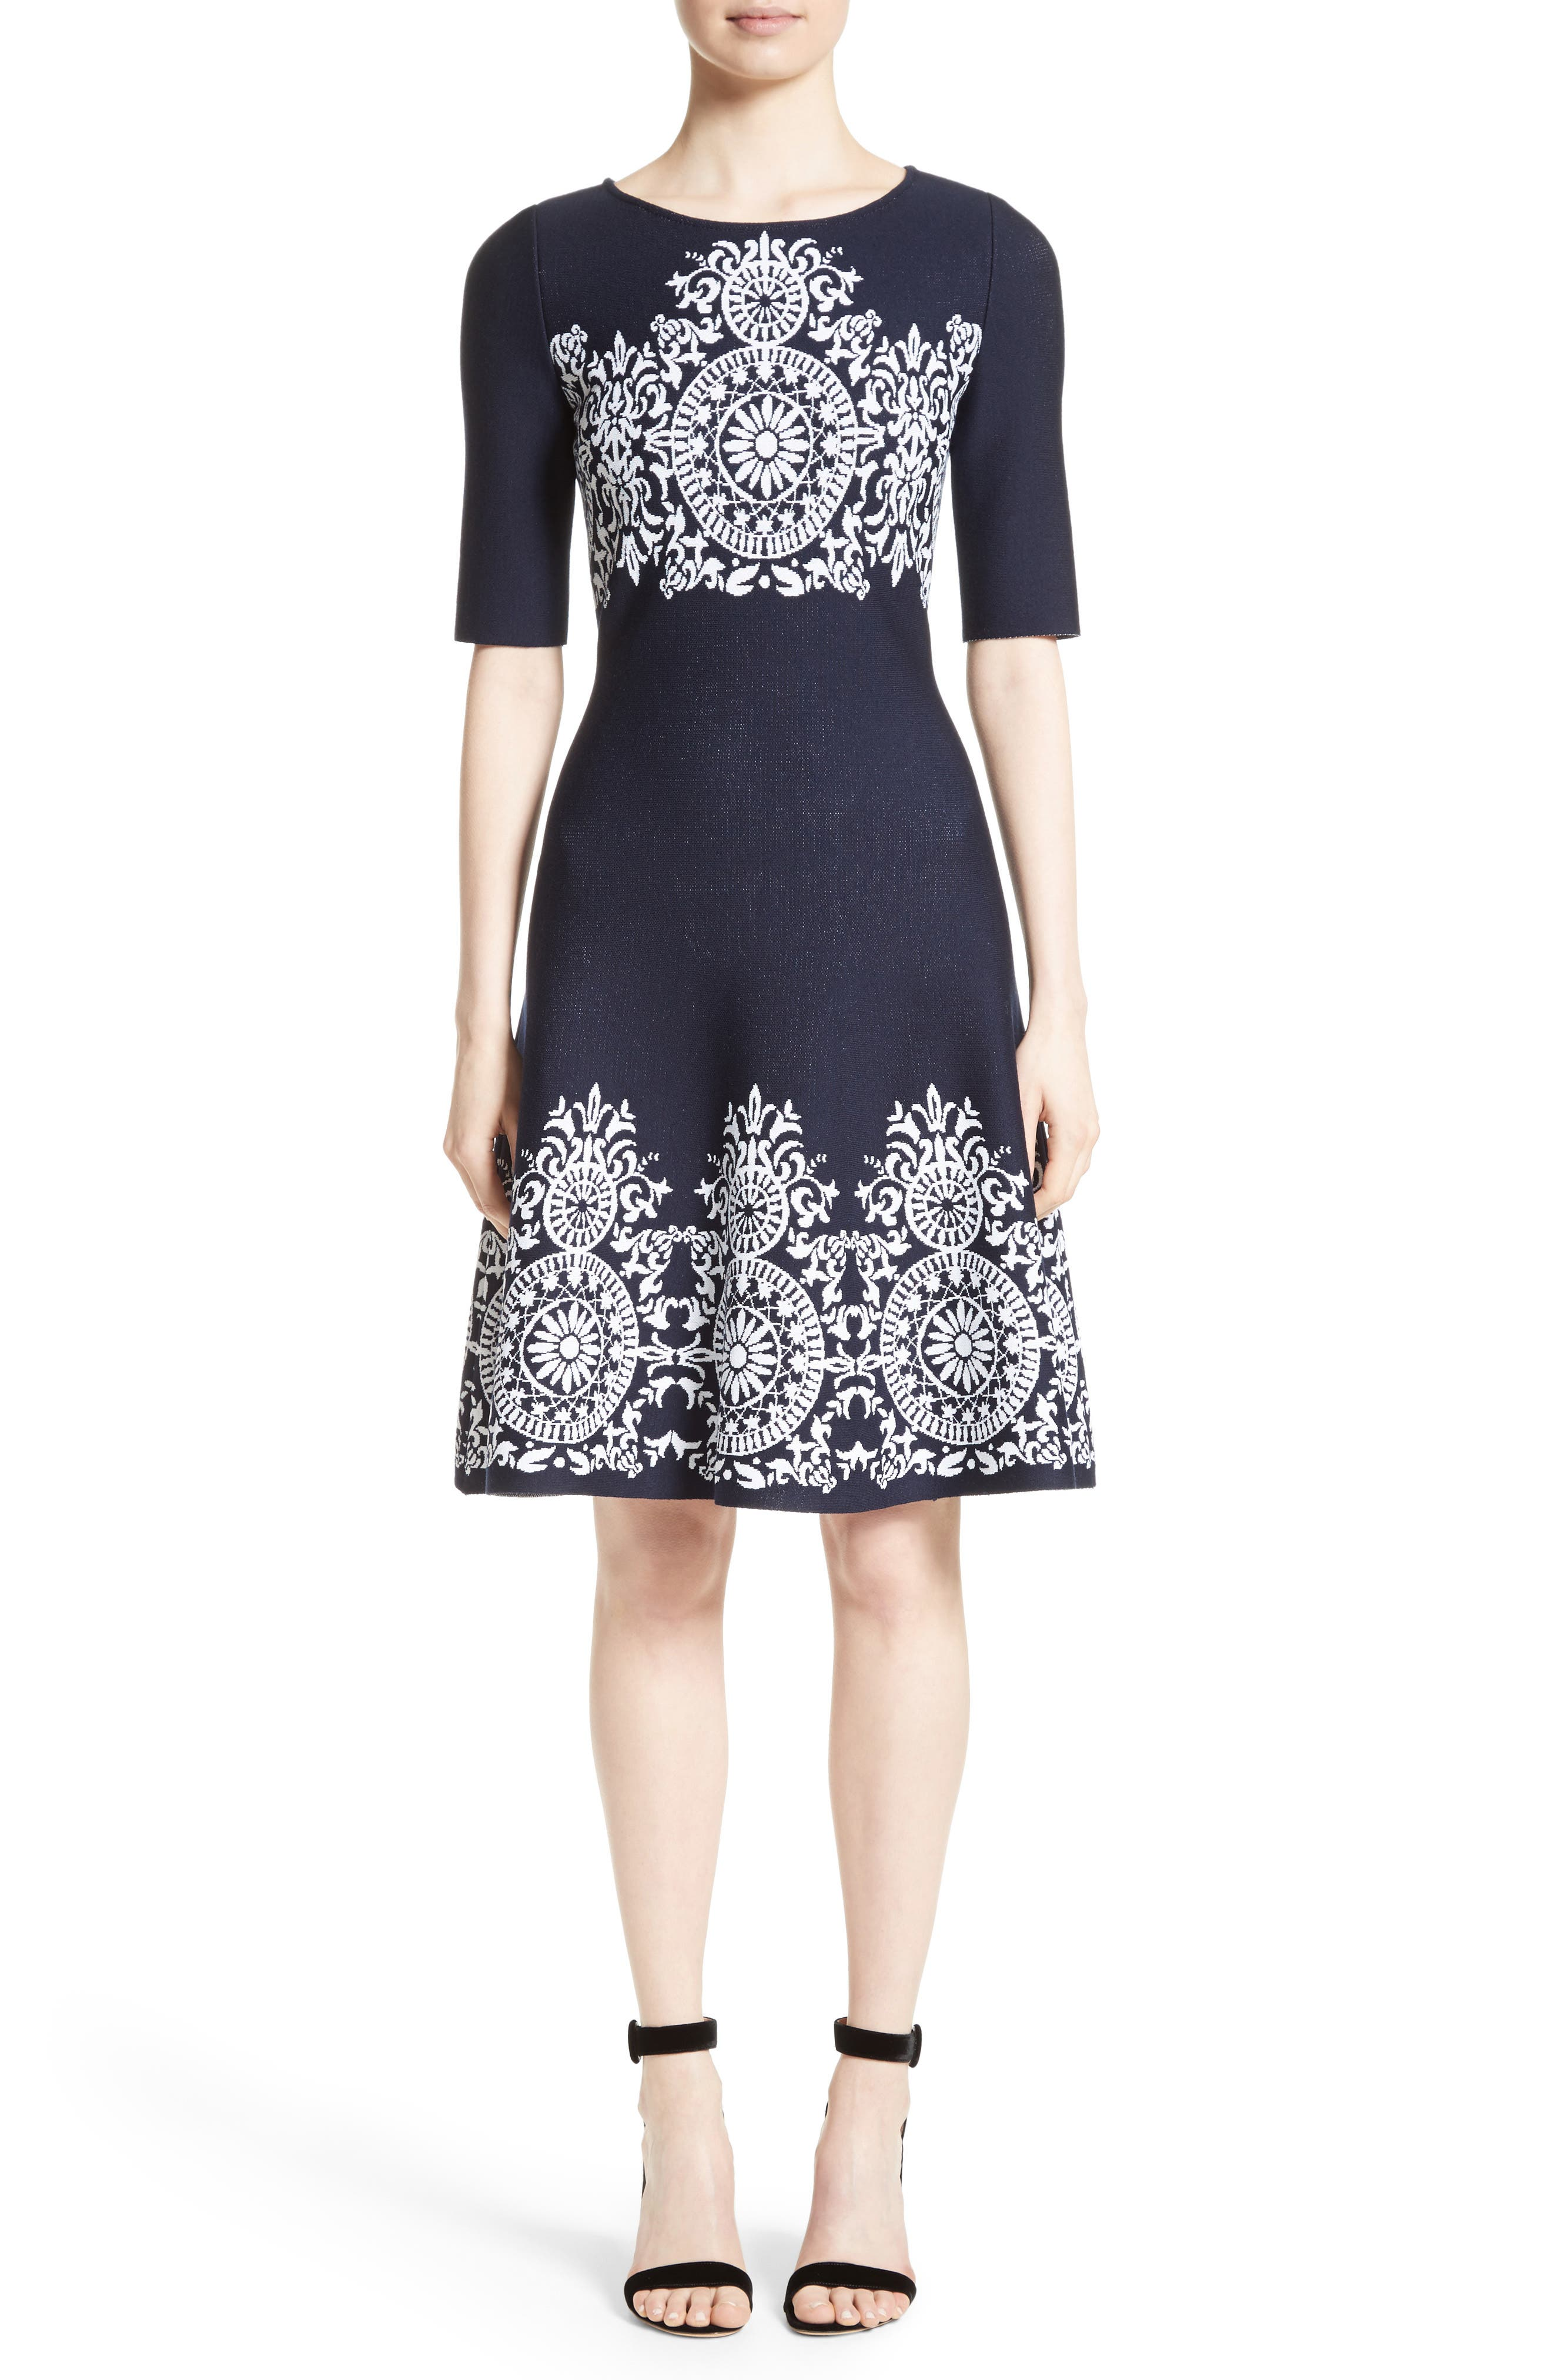 Main Image - St. John Collection Nellore Jacquard Knit Fit & Flare Dress